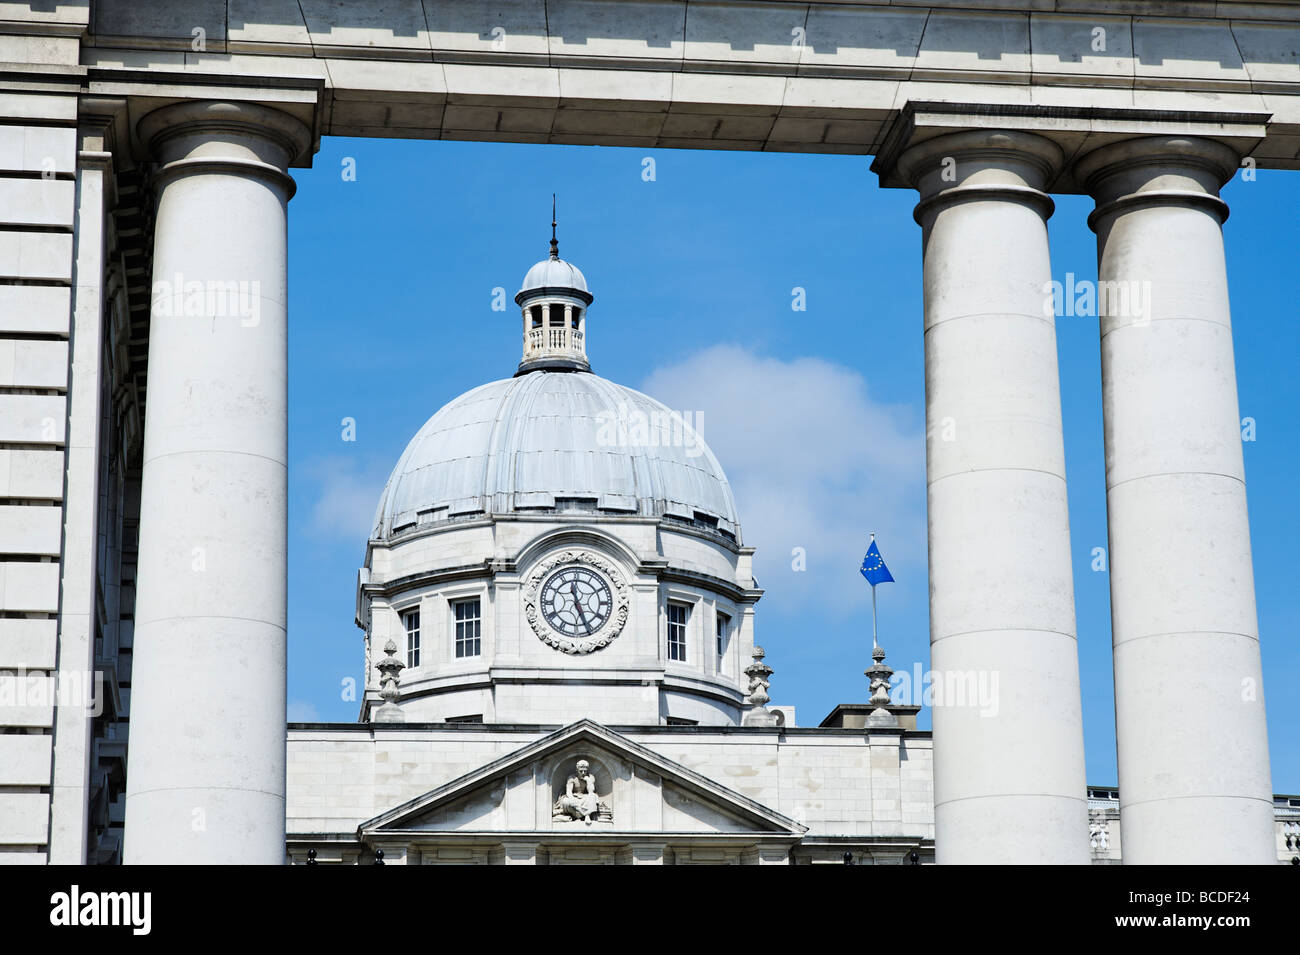 Leinster House building which is the seat of the Irish Parliament Dublin Republic of Ireland - Stock Image